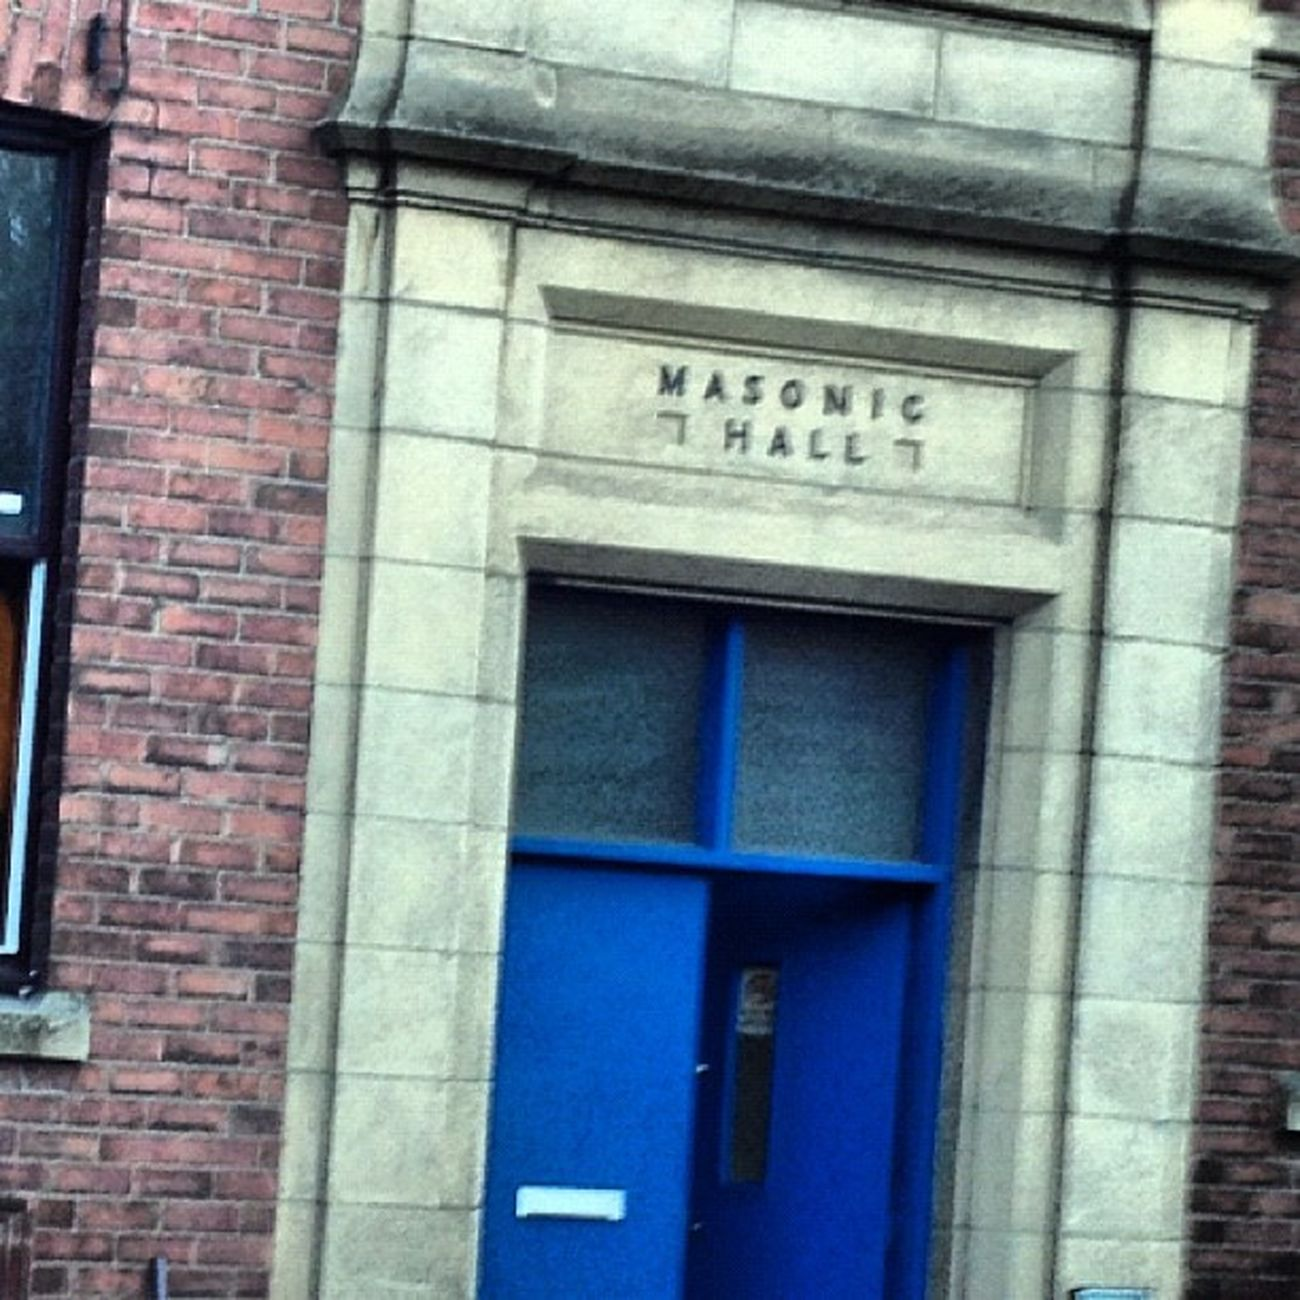 Hetton MasonicHall Masons Secret club blue door doorway building sunderland northeast england instahub instanow instacapture interesting